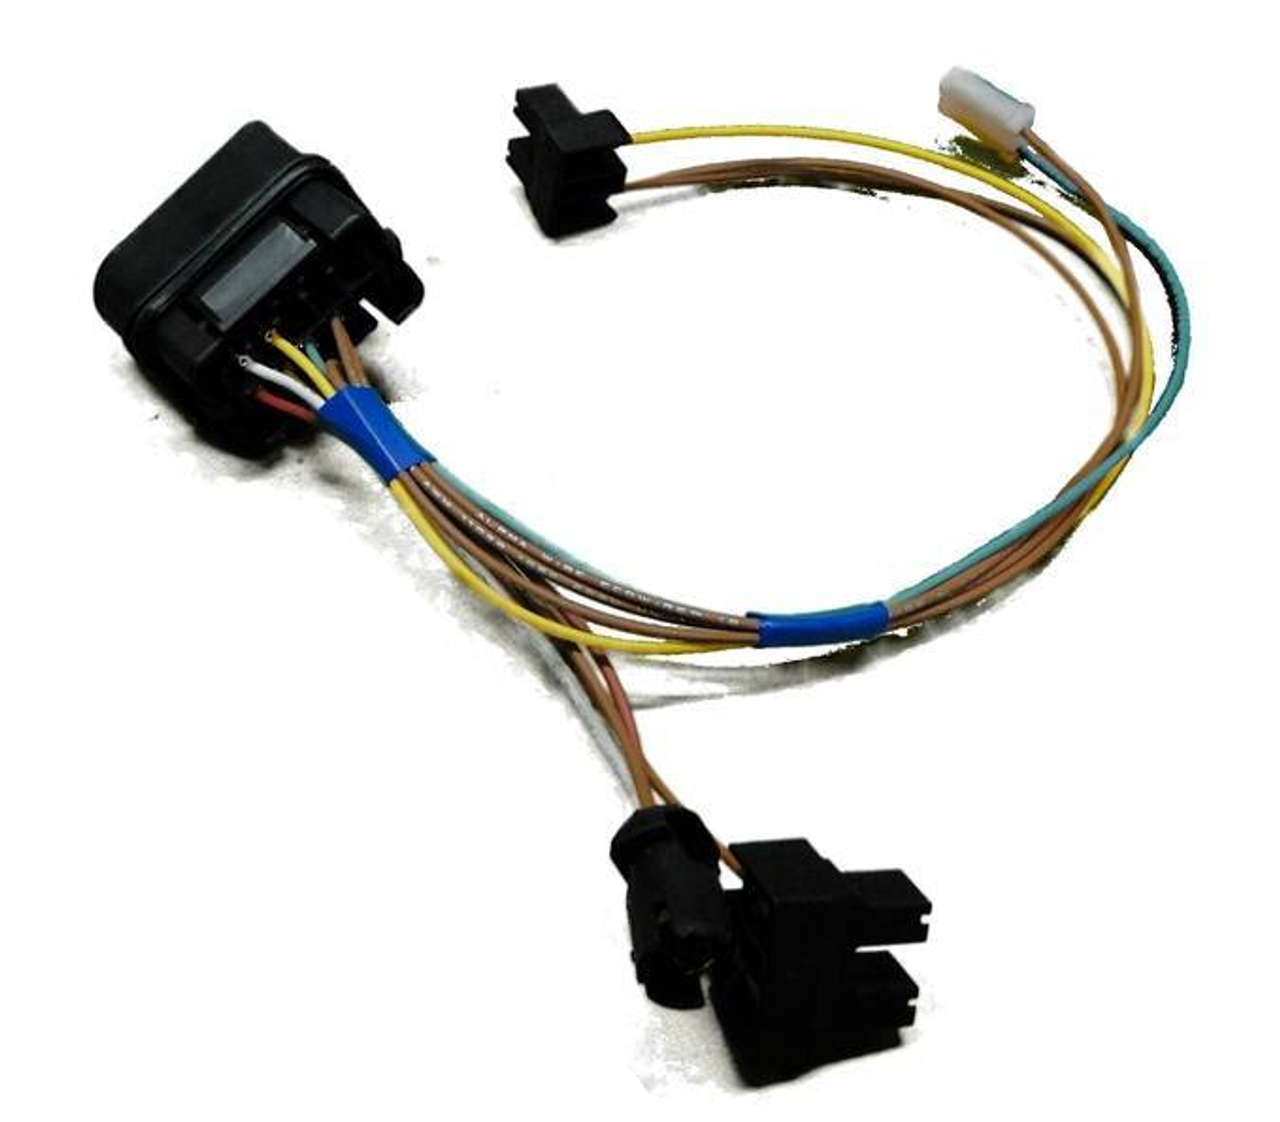 upgraded headlight wiring harness | vw mk4 golf | 1 pack  tunemyeuro